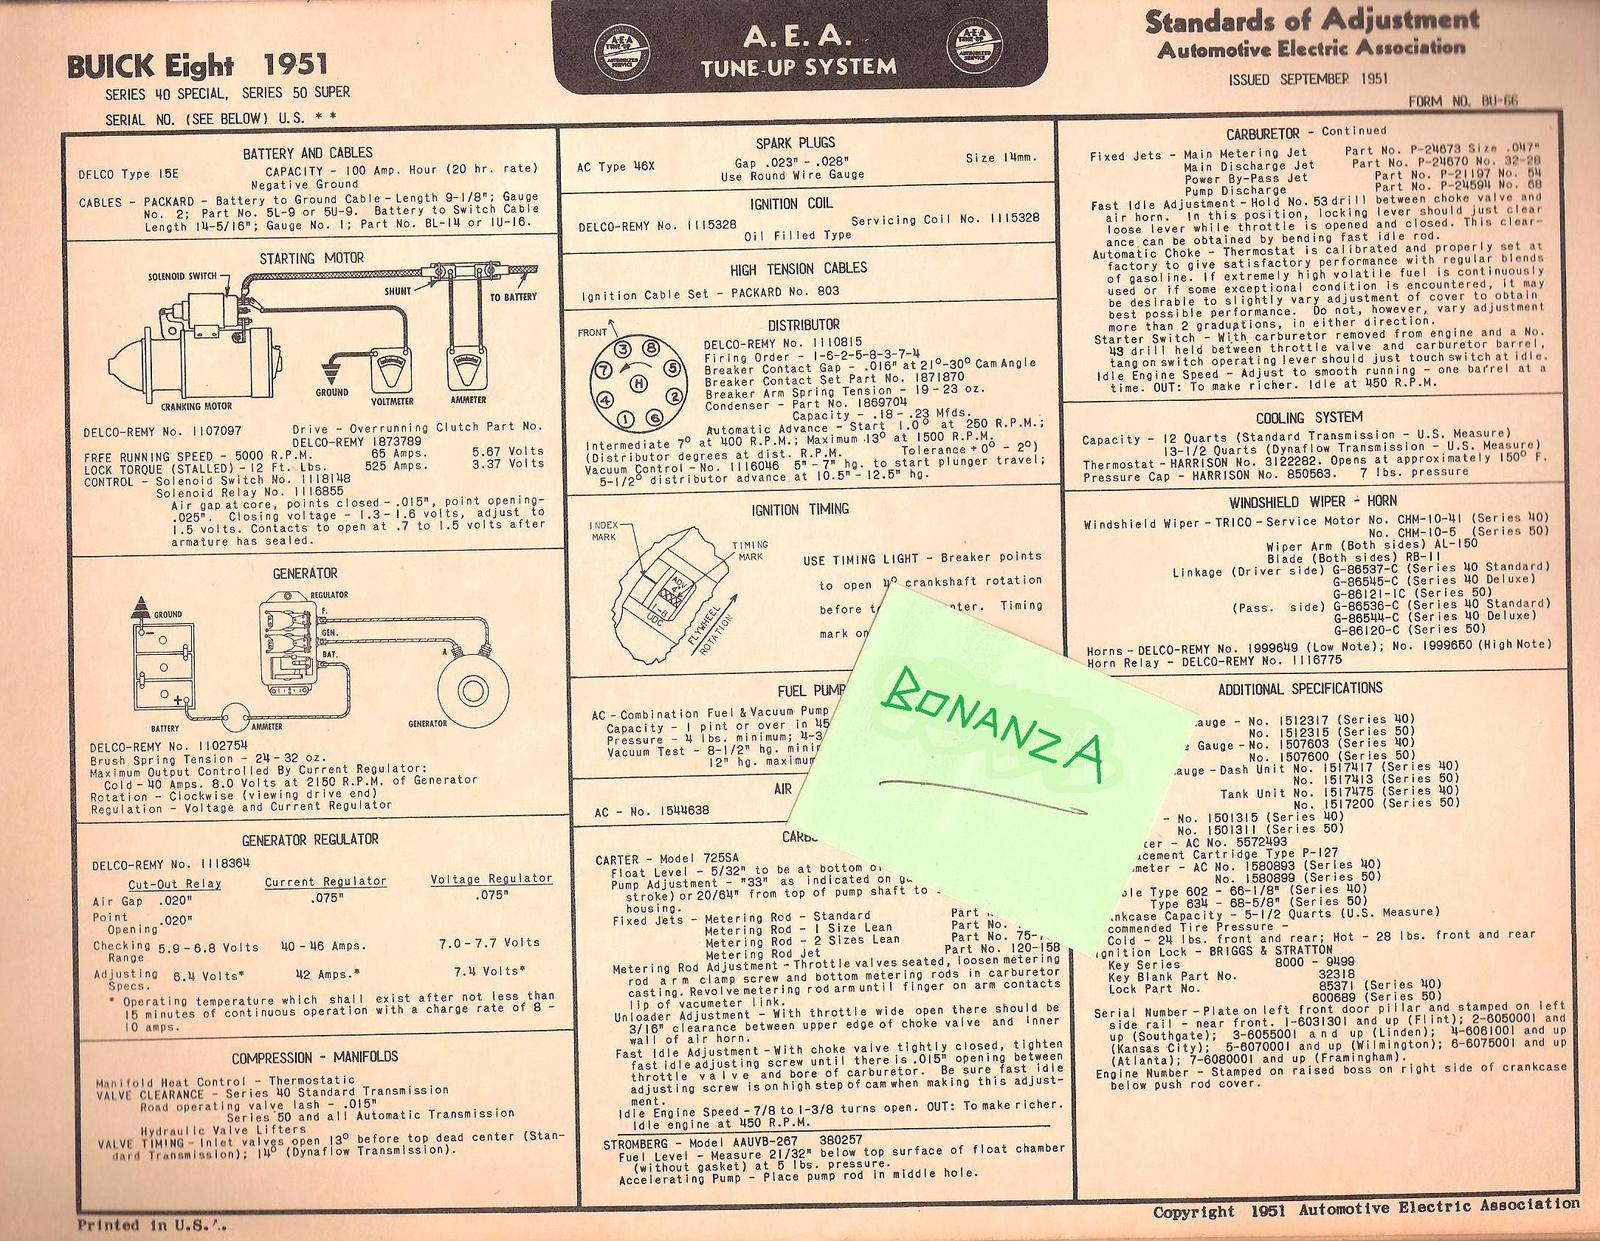 1951 AEA Tune-up Chart Buick Eight Series 40 Special & 50 Super w Wiring  Diagram